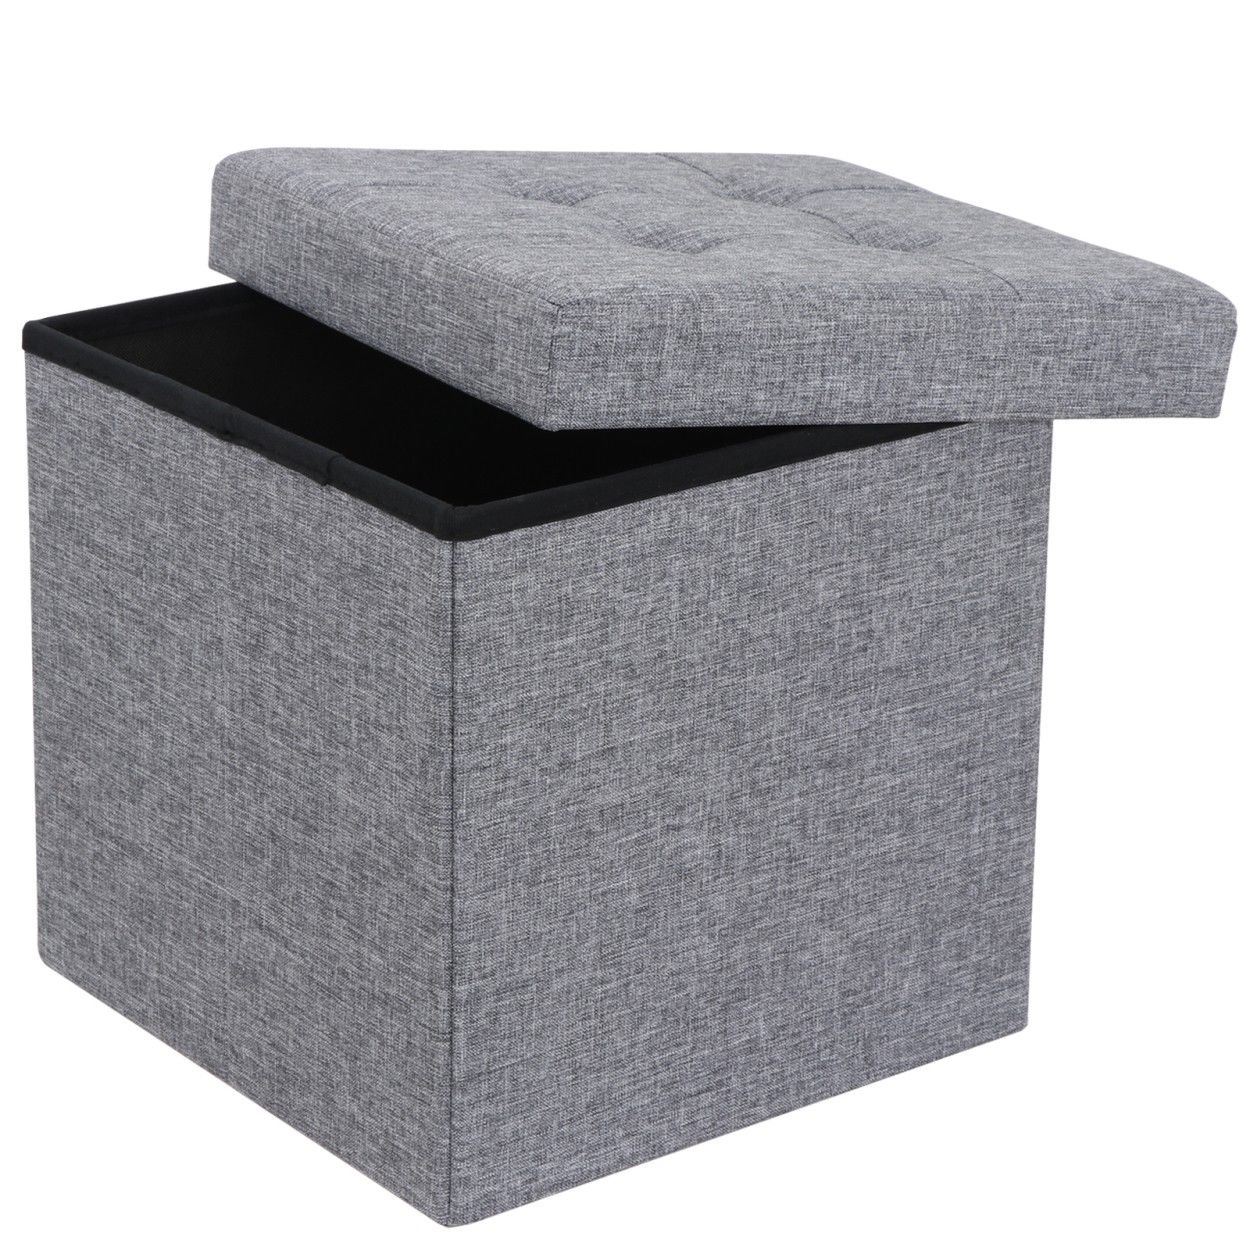 Zeny Foldable Tufted Faux Leather Storage Ottoman Square Cube Foot Rest  Stool